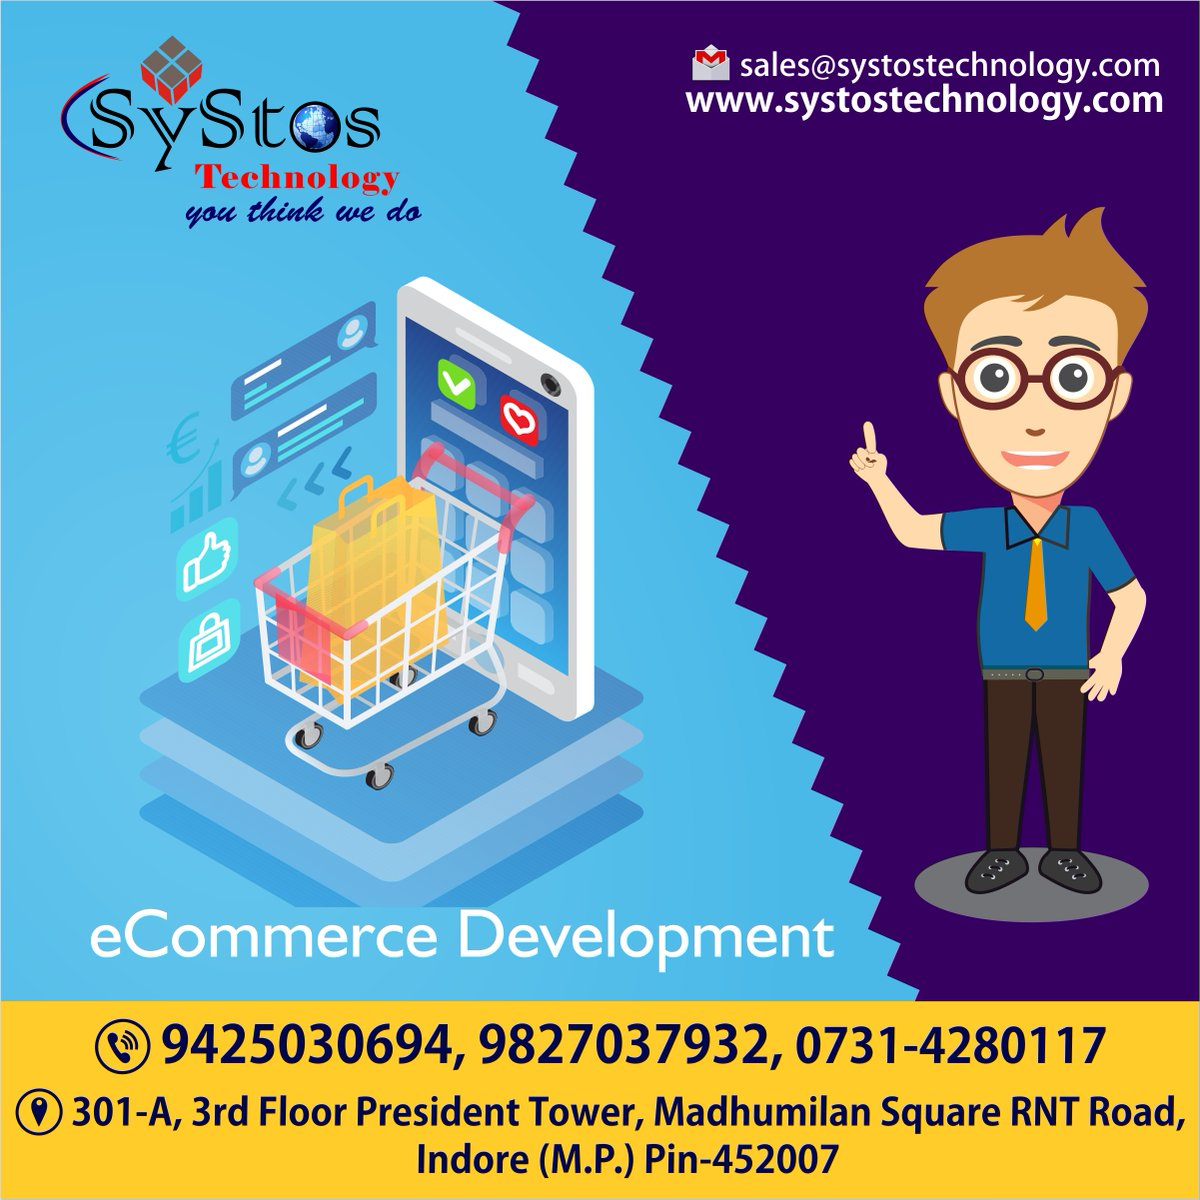 Grow your Business with our eCommerce solutions.  http://www.systostechnology.com  #eCommercesolutions #website #ITservices #ITcompany #websitedevelopment #webapplication #softwaredevelopment #mobileapp #mobileappdevelopment #androidapps #iosapps #SEO #SMO #PPC #adwords #digitalmarketingpic.twitter.com/Rwi08HucpX